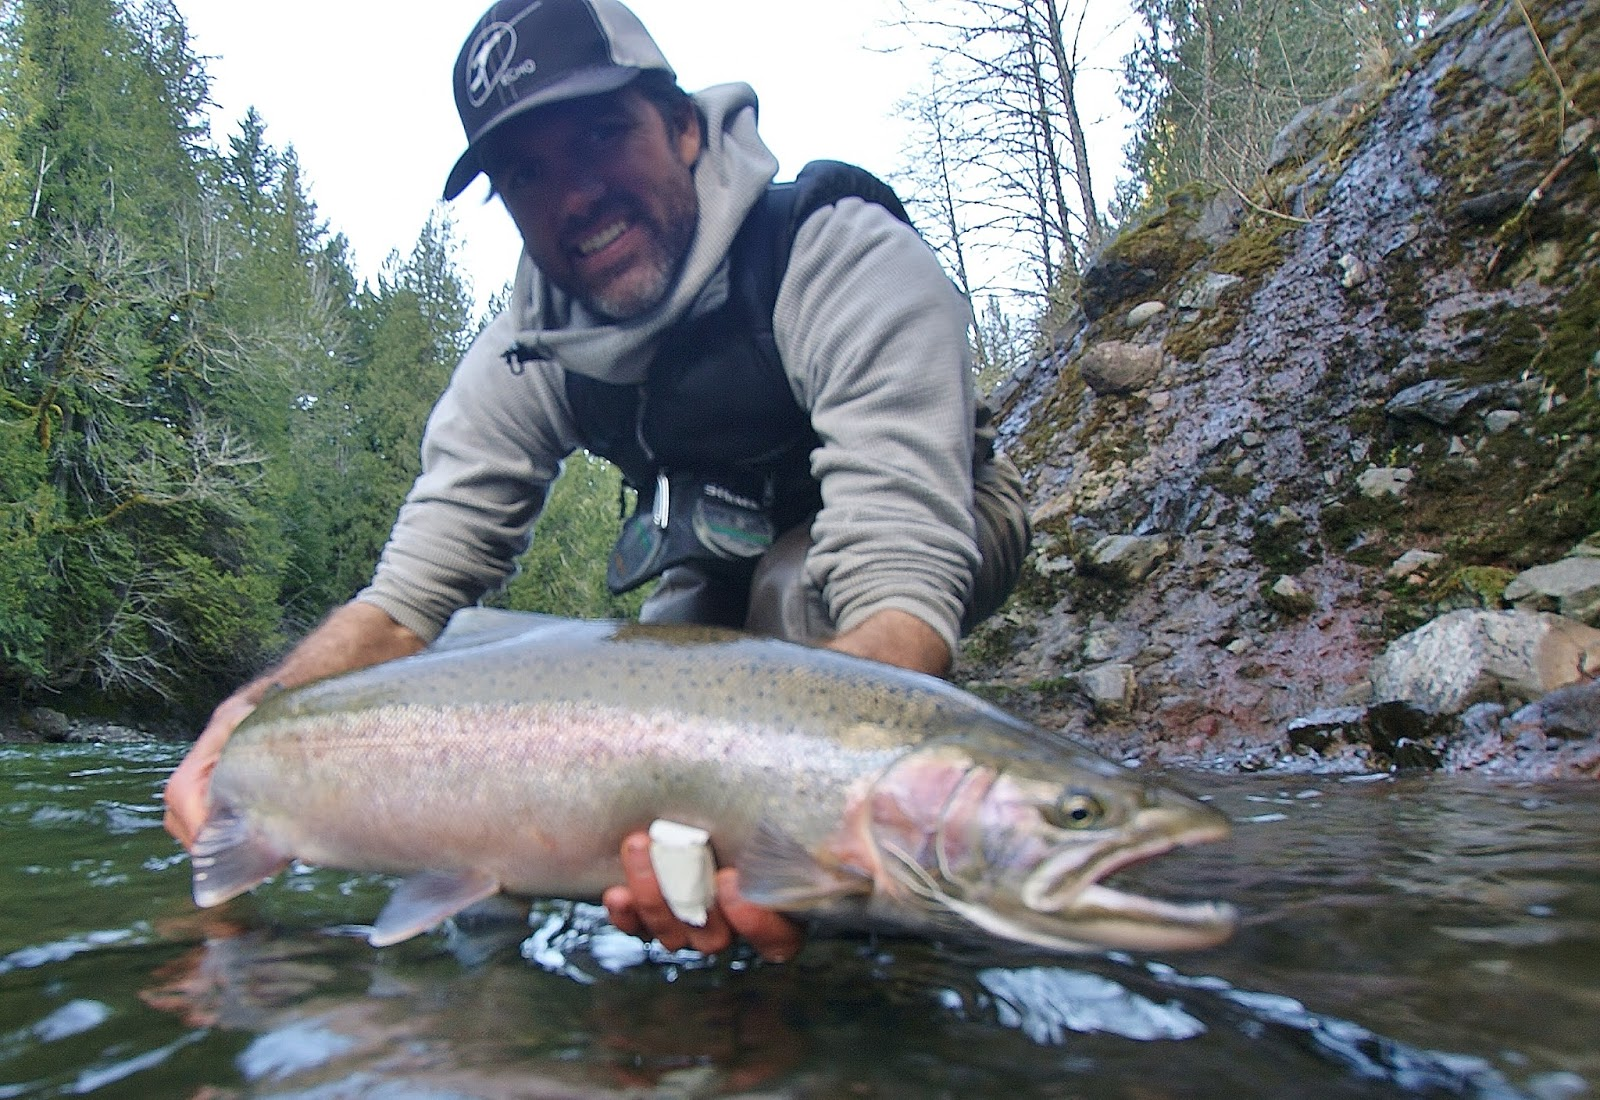 Fly fish oregon water time report sandy river fishing for Oregon steelhead fishing